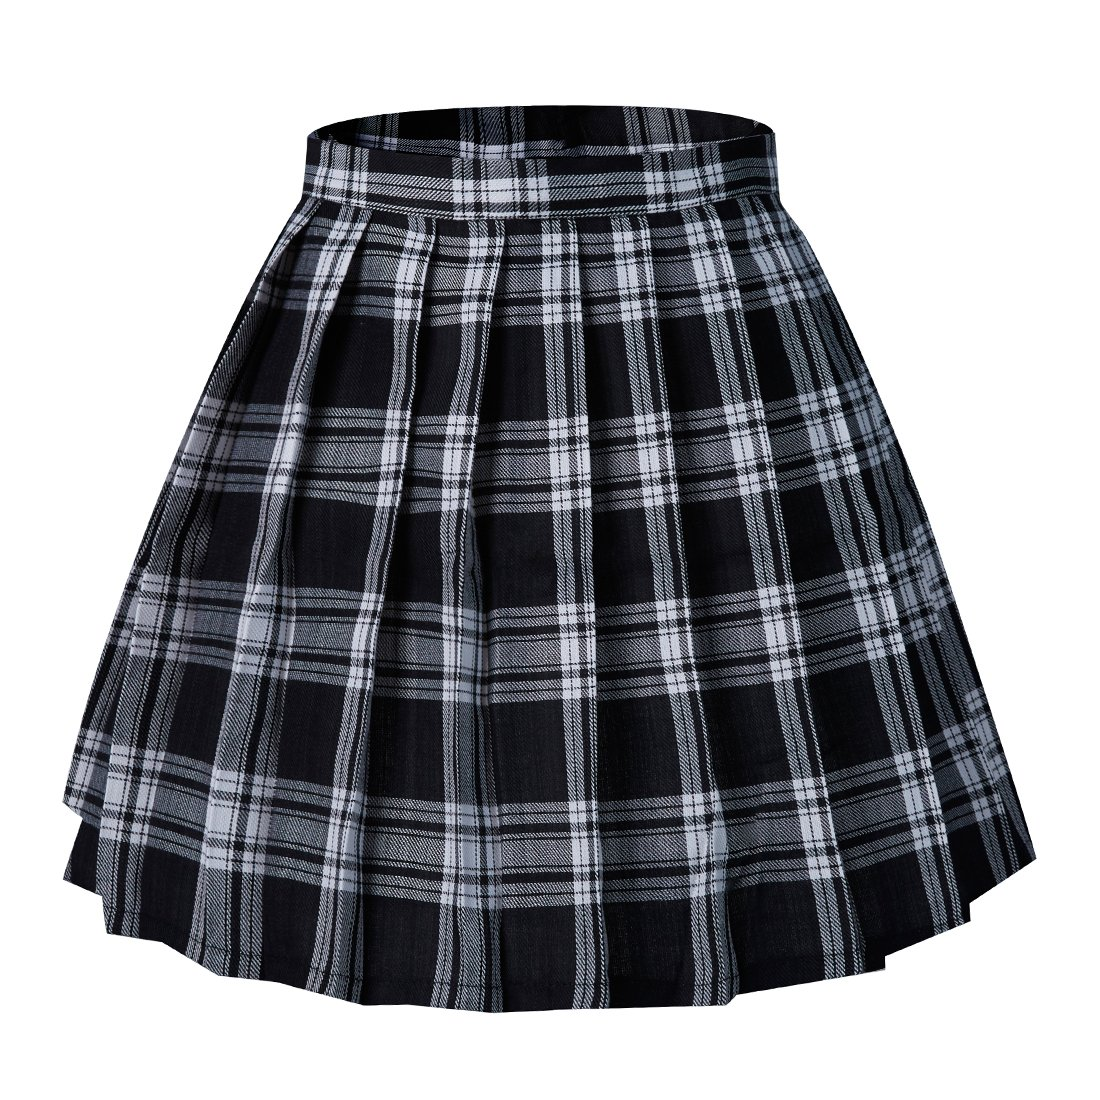 Tremour Girls School Uniforms Solid Summer Skirts Pleated Mini Skirt(L,Black White)